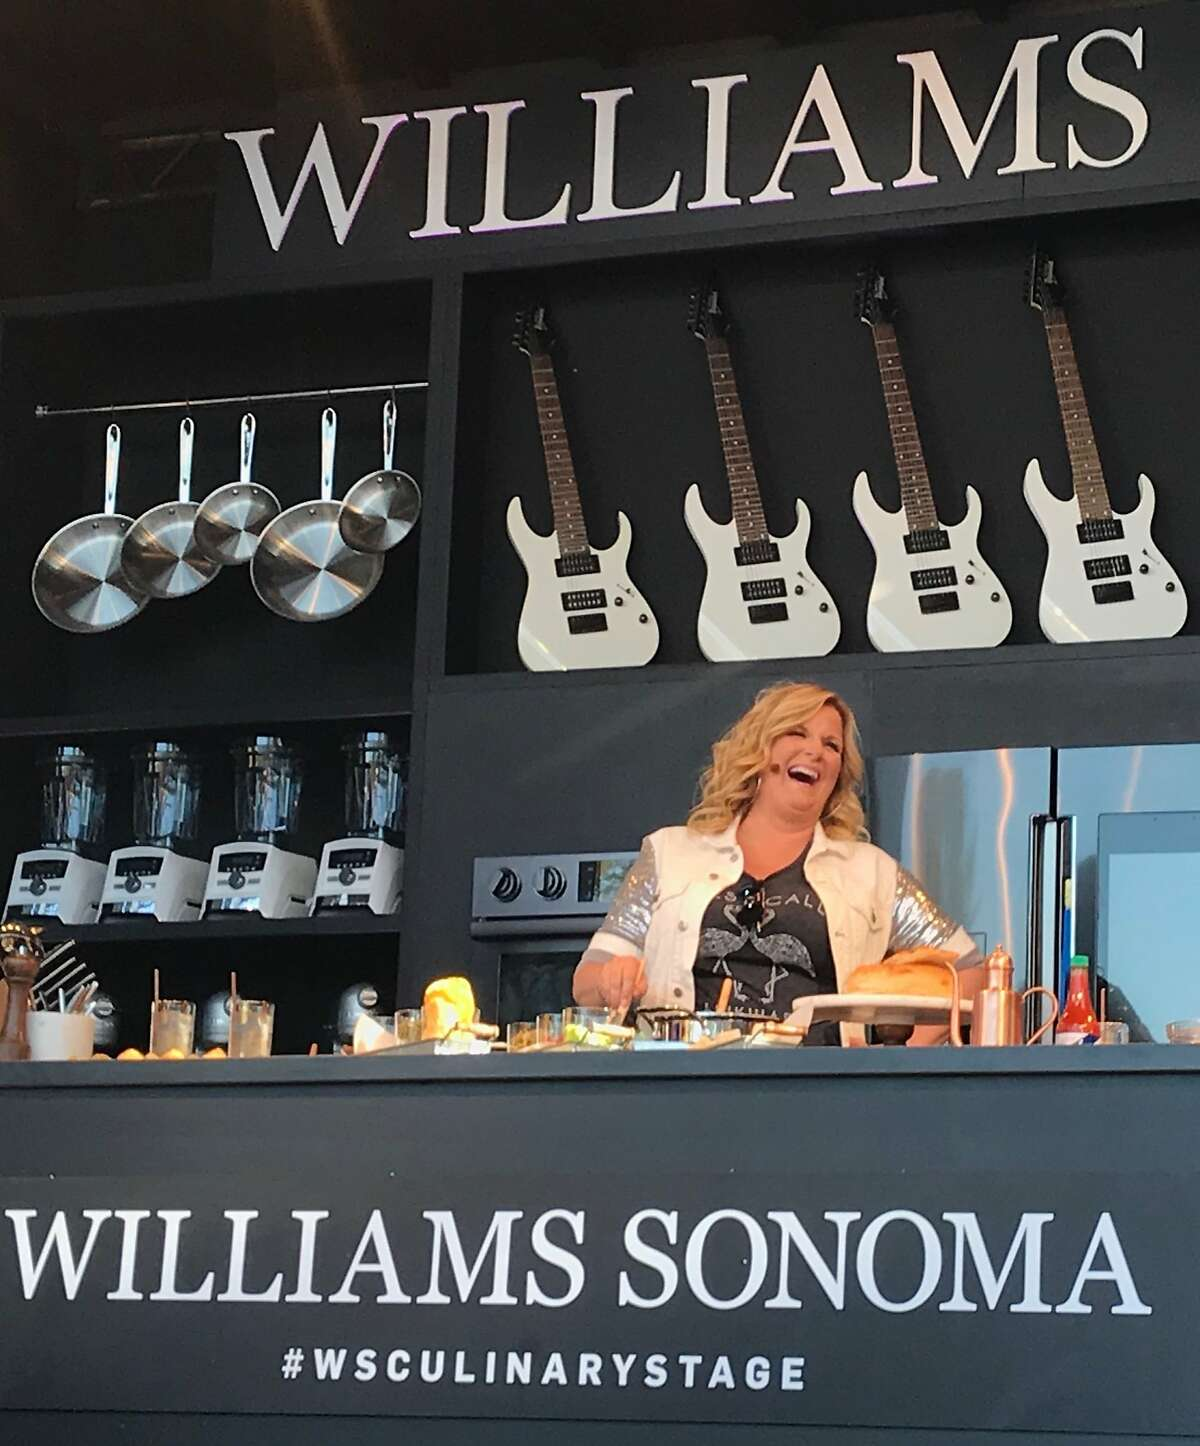 Trisha Yearwood did a cooking demonstration at BottleRock Napa Valley's Williams Sonoma Culinary Stage on Sunday, May 27.